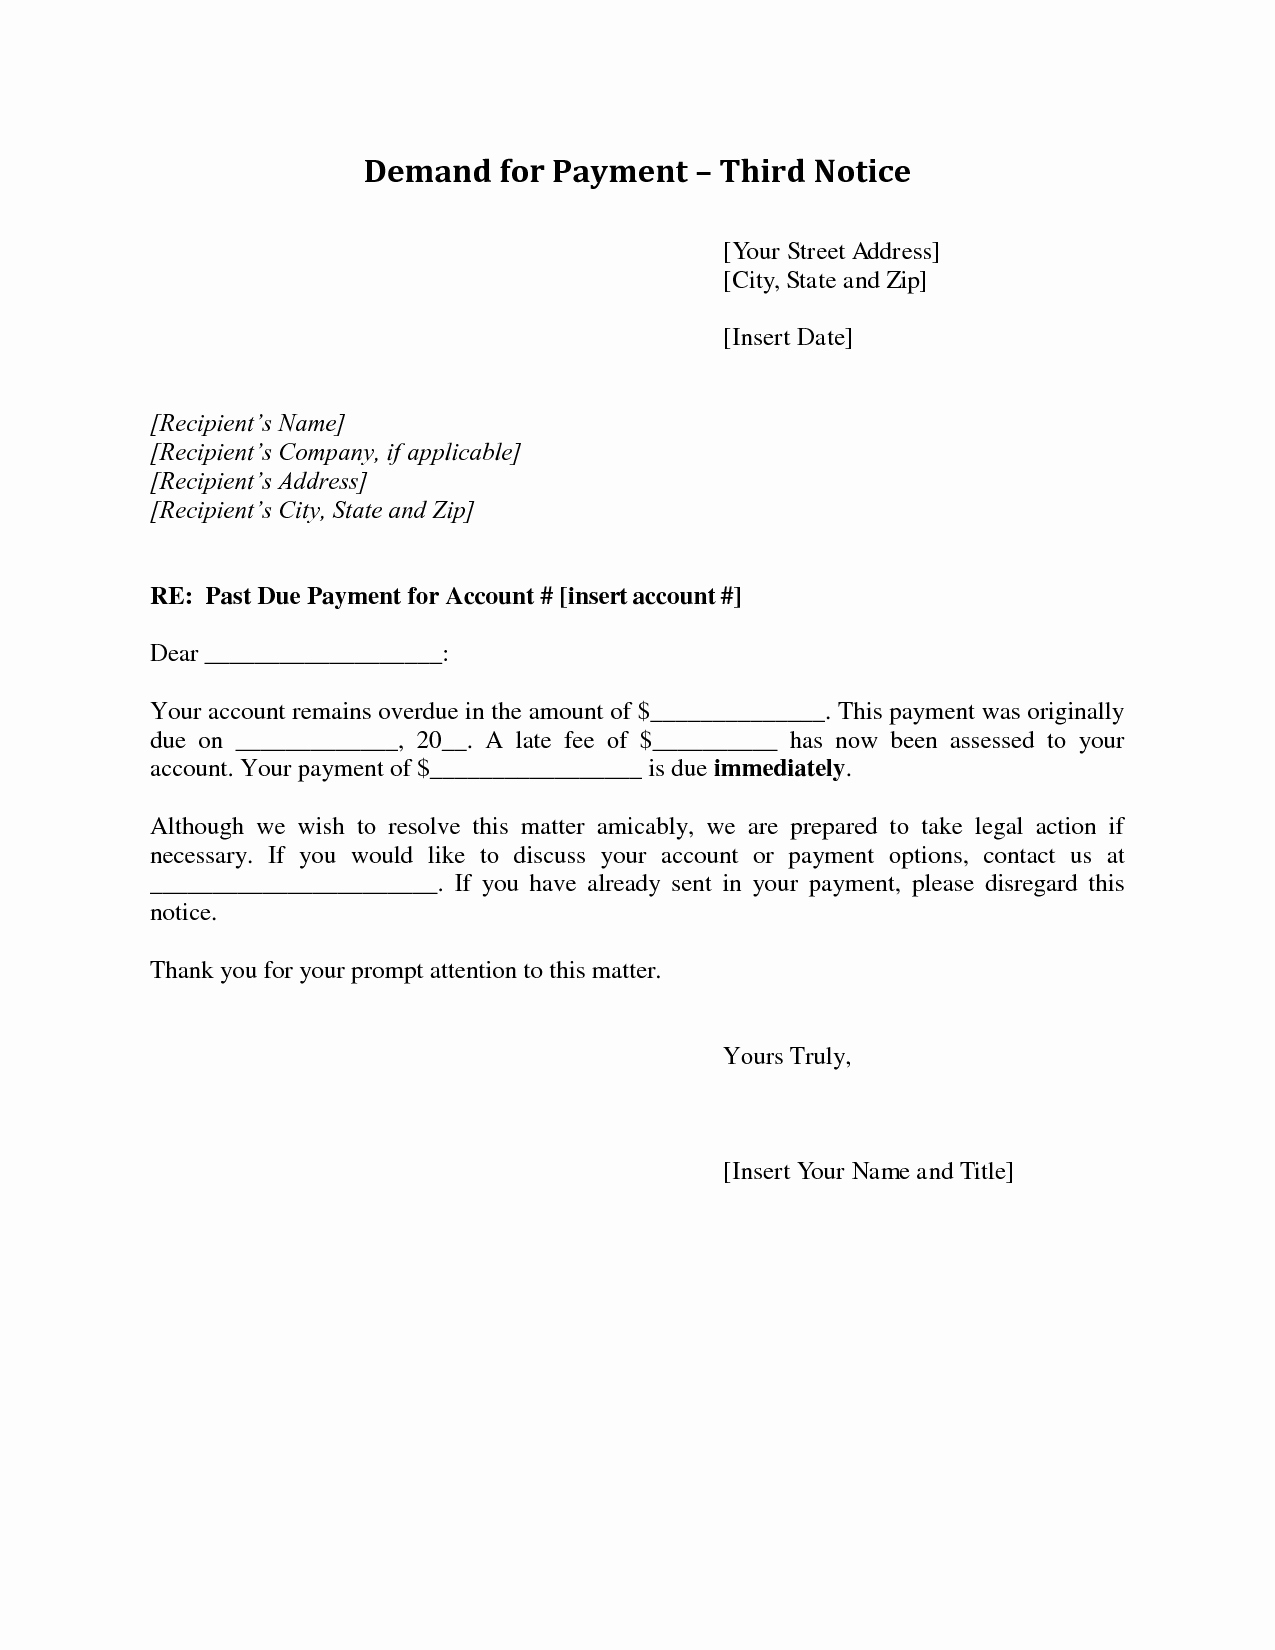 Final Notice before Legal Action Letter Template Uk - Demand Letter Sample for Payment Fresh 20 New Payment Demand Letter